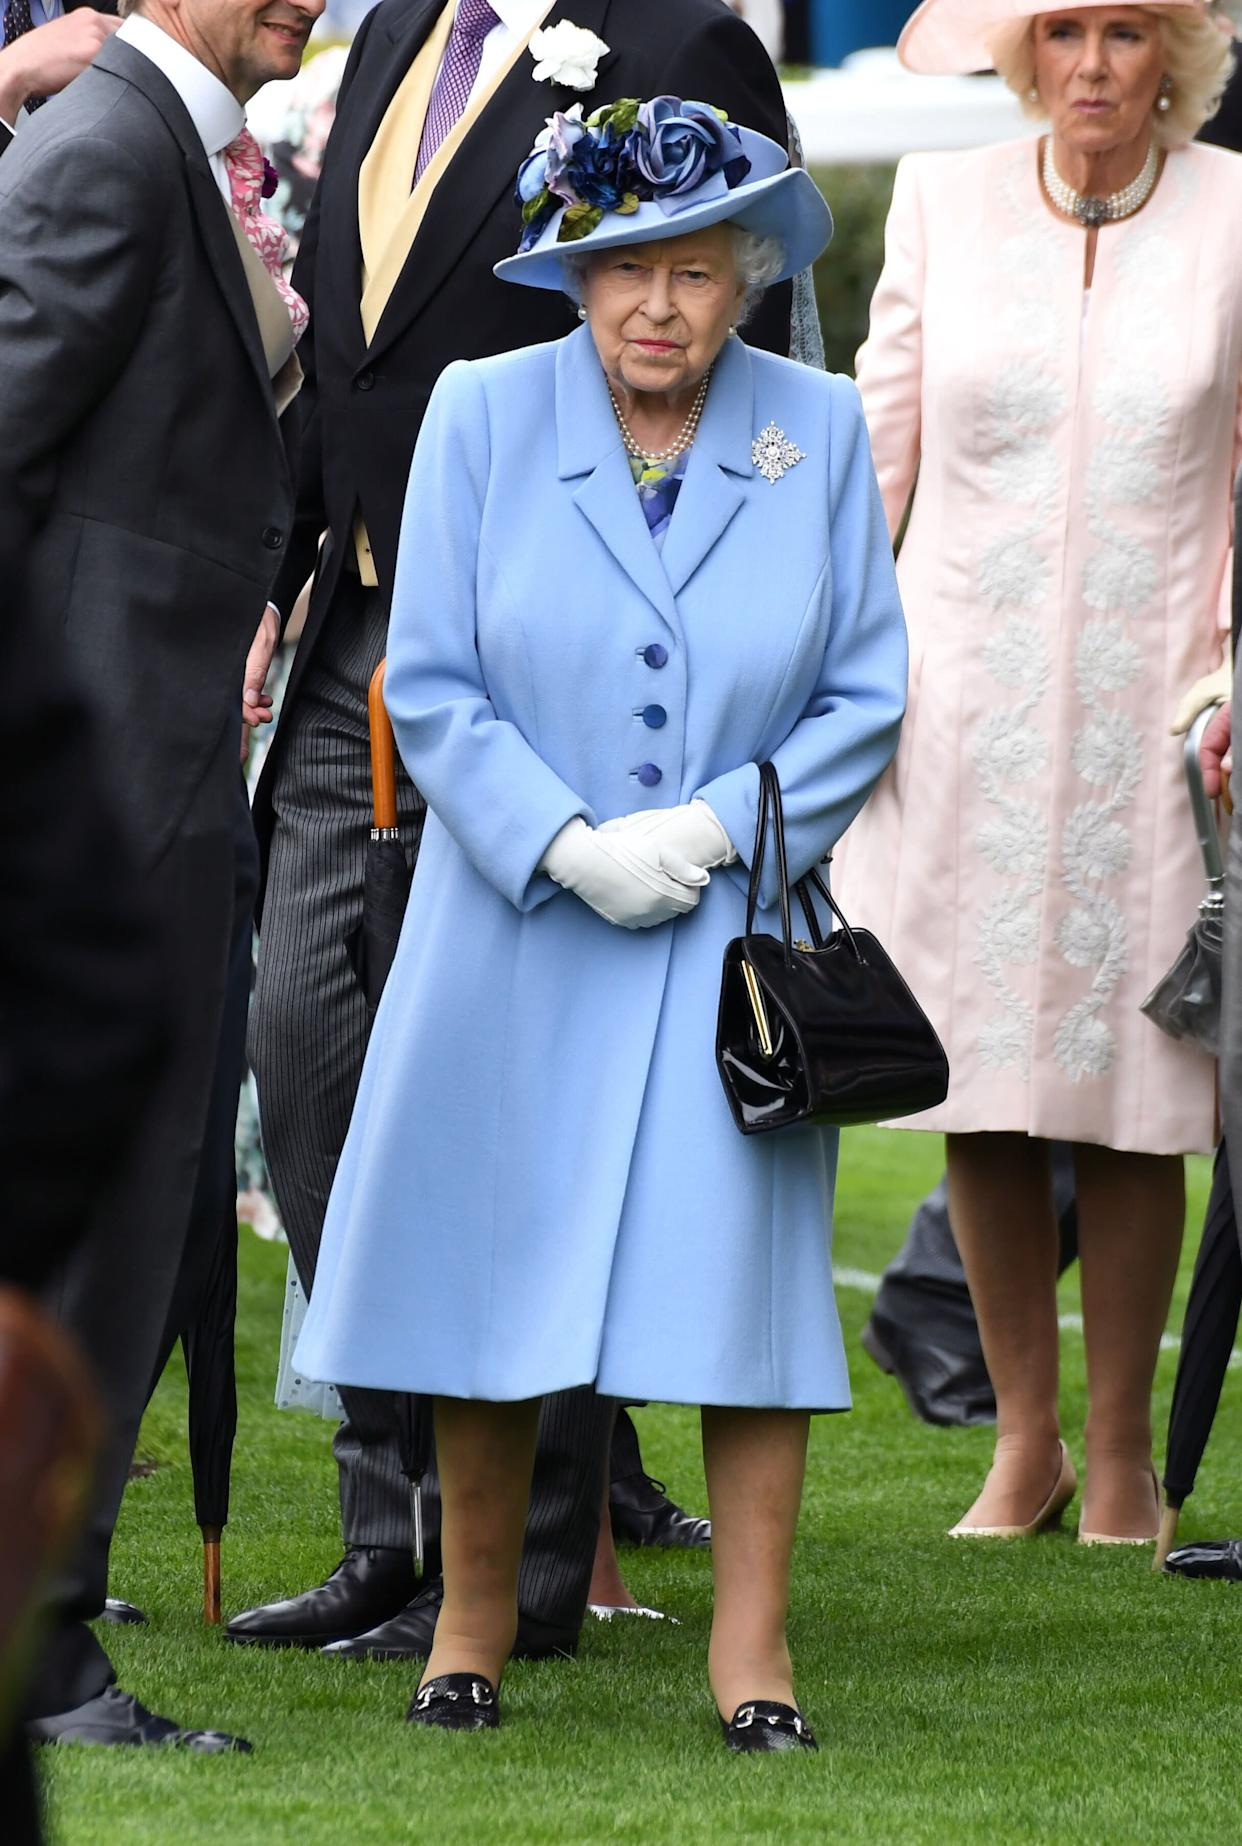 Queen Elizabeth II, with Camilla,Duchess of Cornwall, right behind her. (Photo: Doug Peters/EMPICS Entertainment)